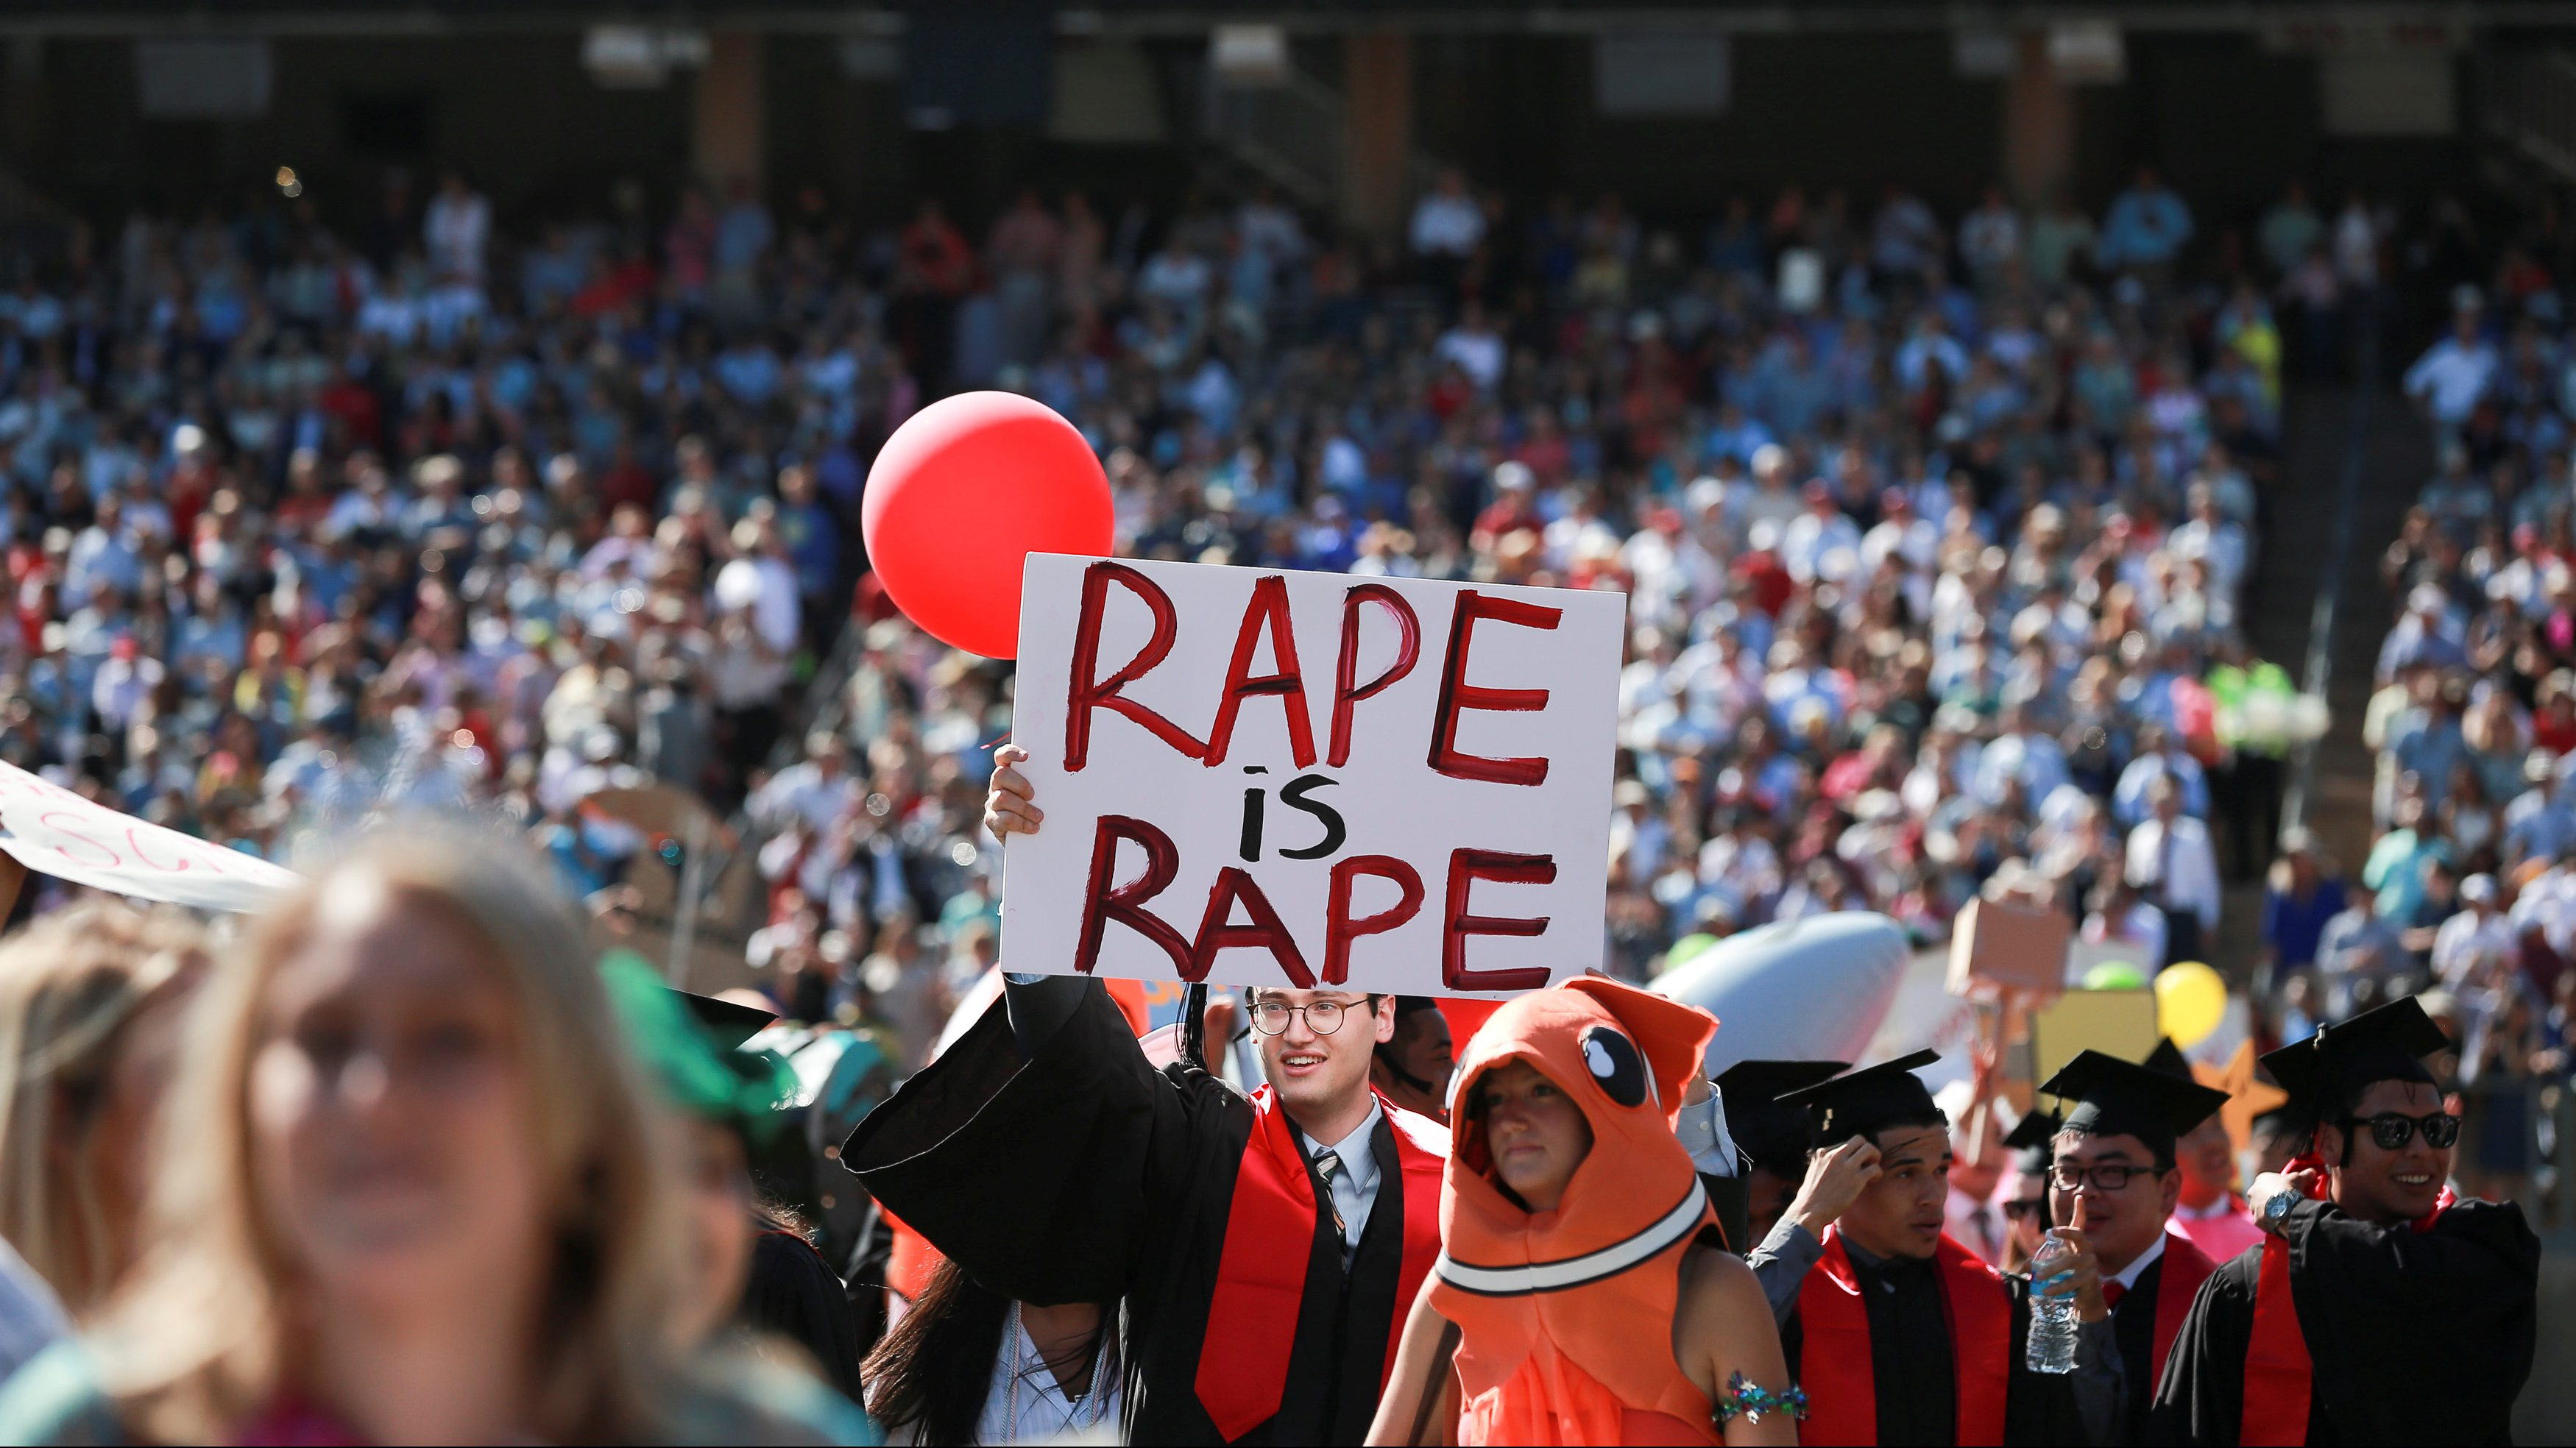 """A student holds a sign that reads: """"Rape is rape"""", during the Wacky Walk portion of the Stanford University commencement ceremony in Palo Alto, California, U.S. June 12, 2016."""